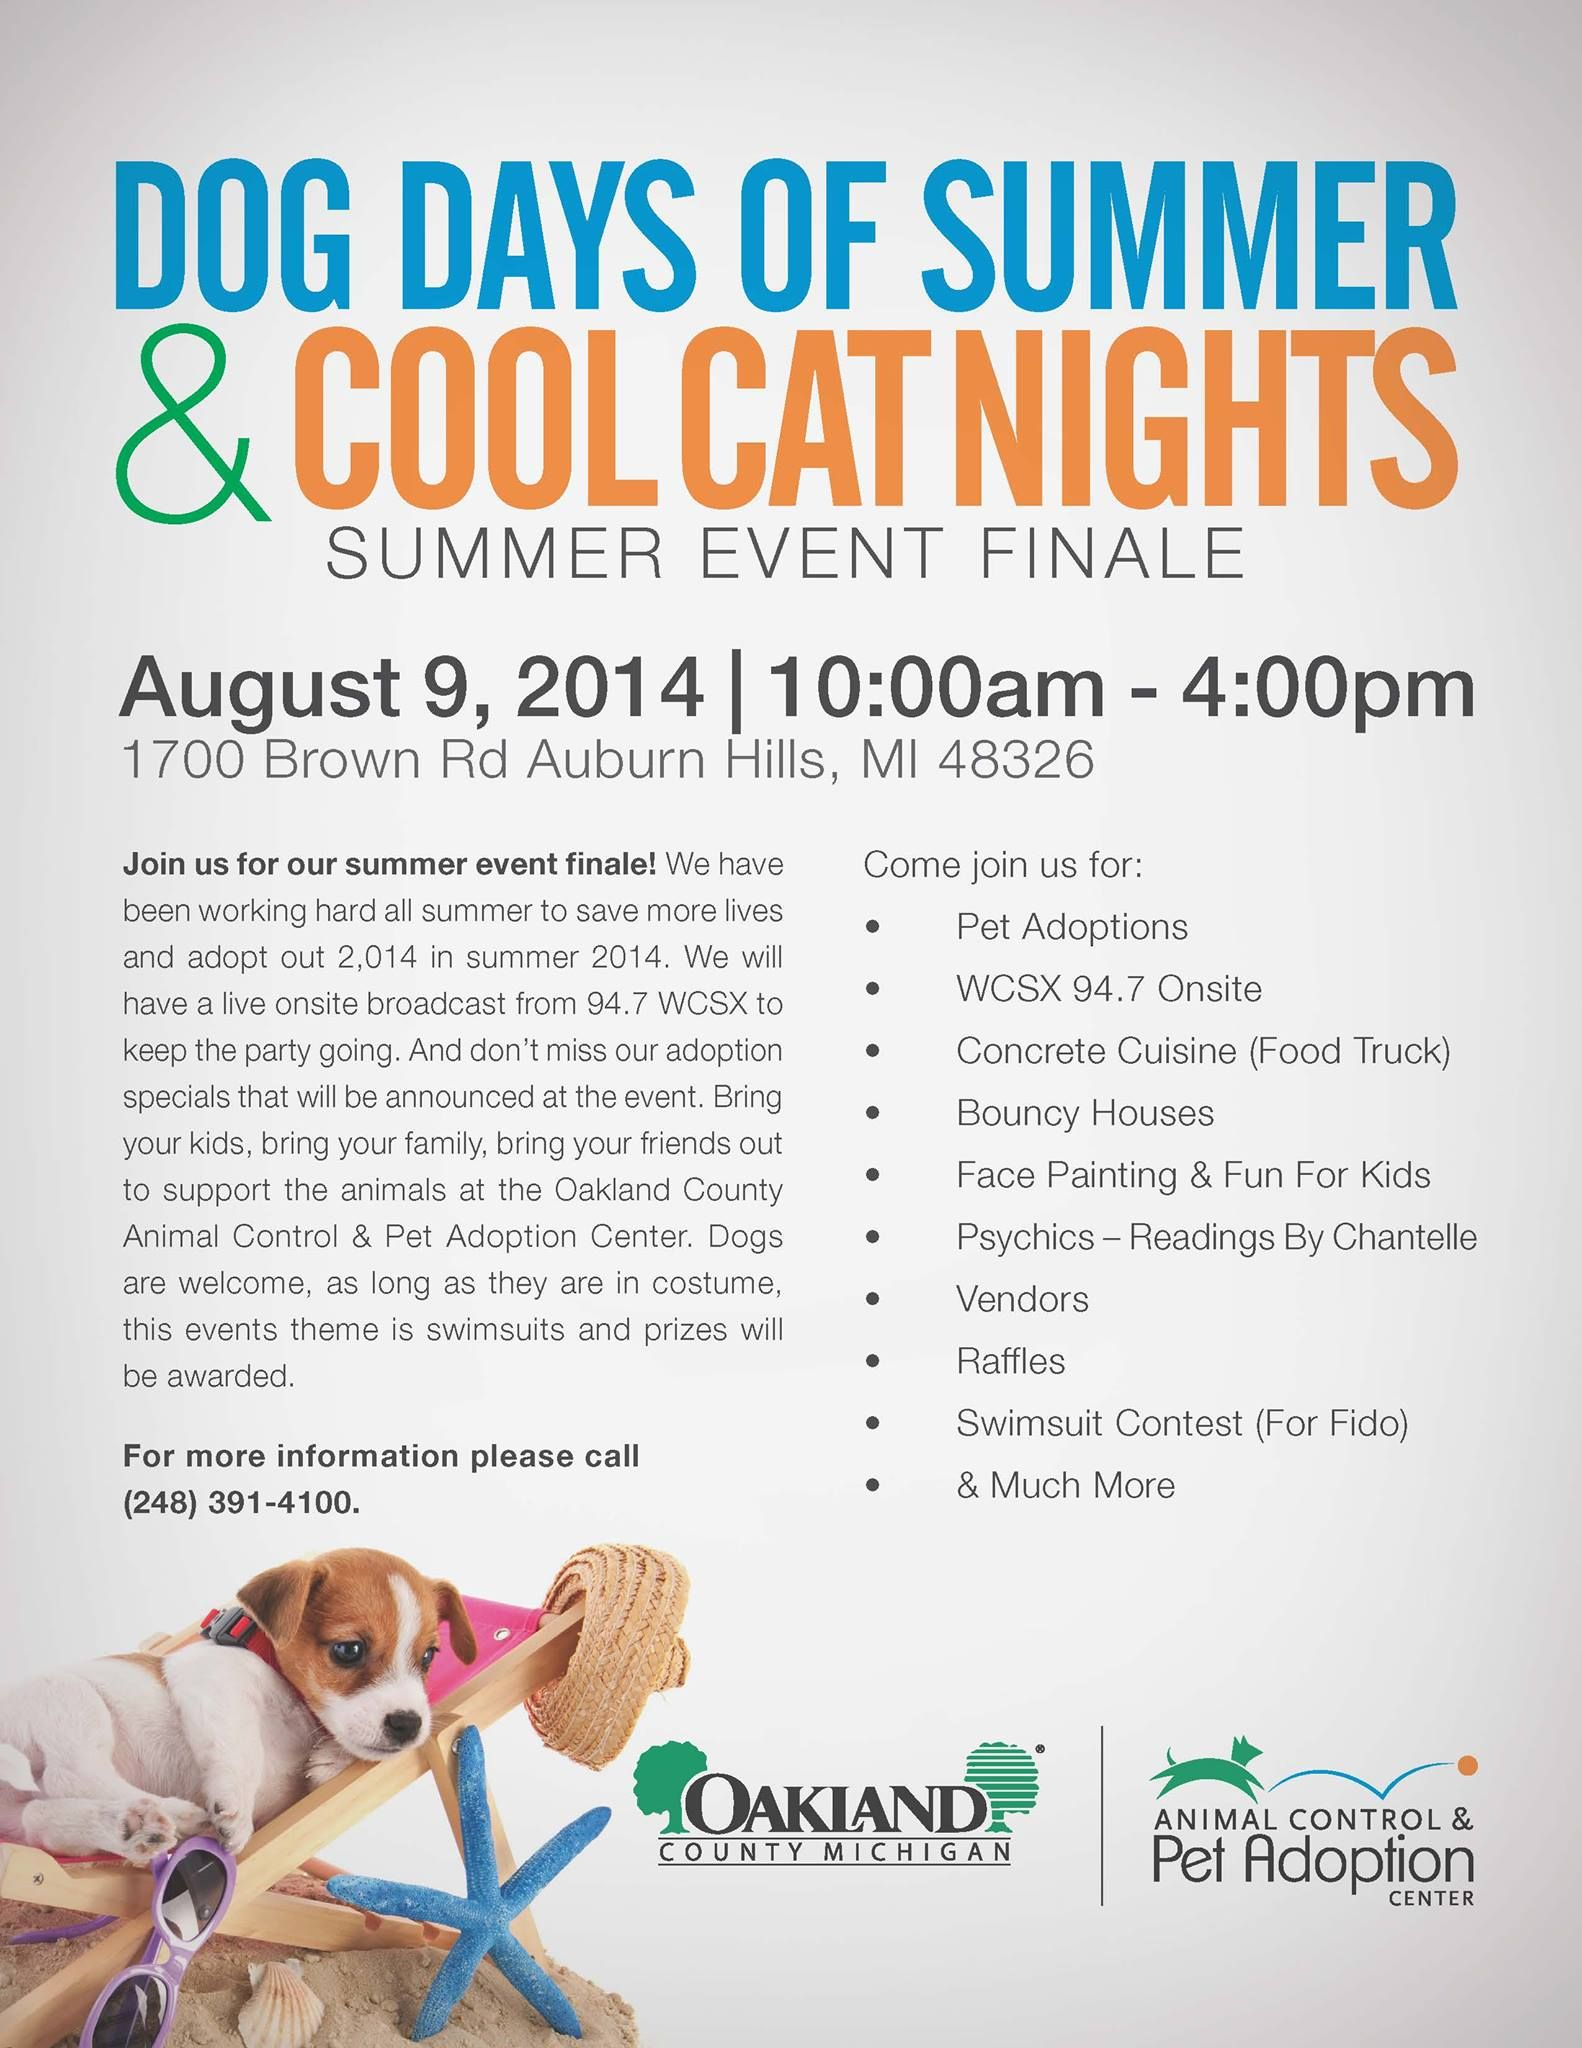 Join Us For Our Summer Event Finale With The Oakland County Pet